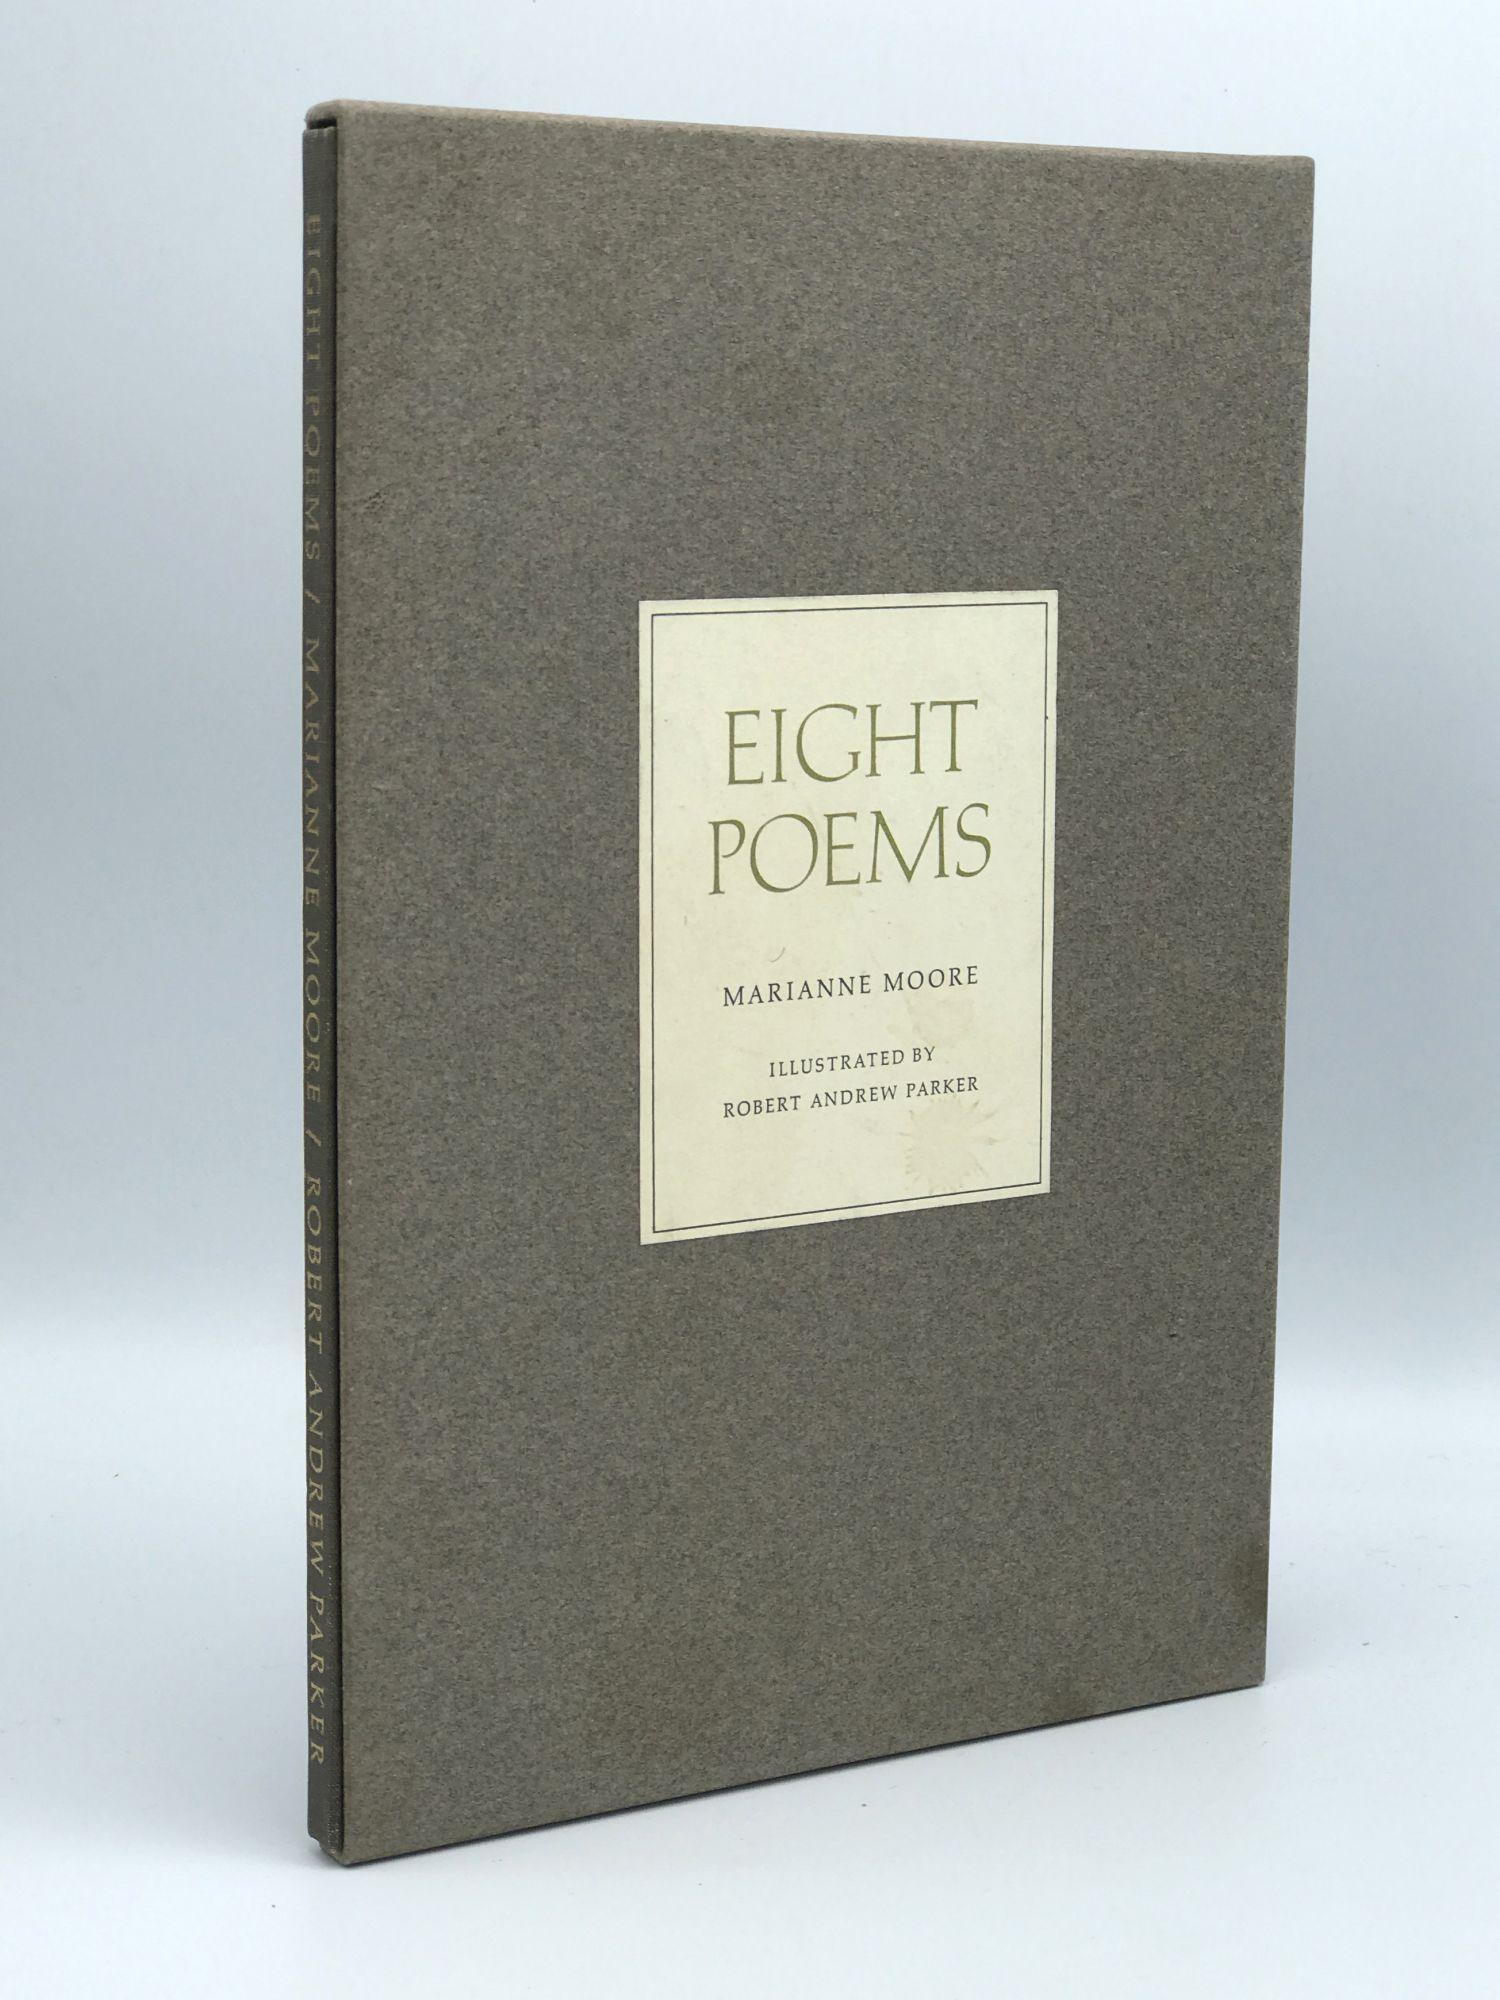 Eight Poems by Marianne / MOORE, Robert Andrew Parker on Riverrun Books &  Manuscripts